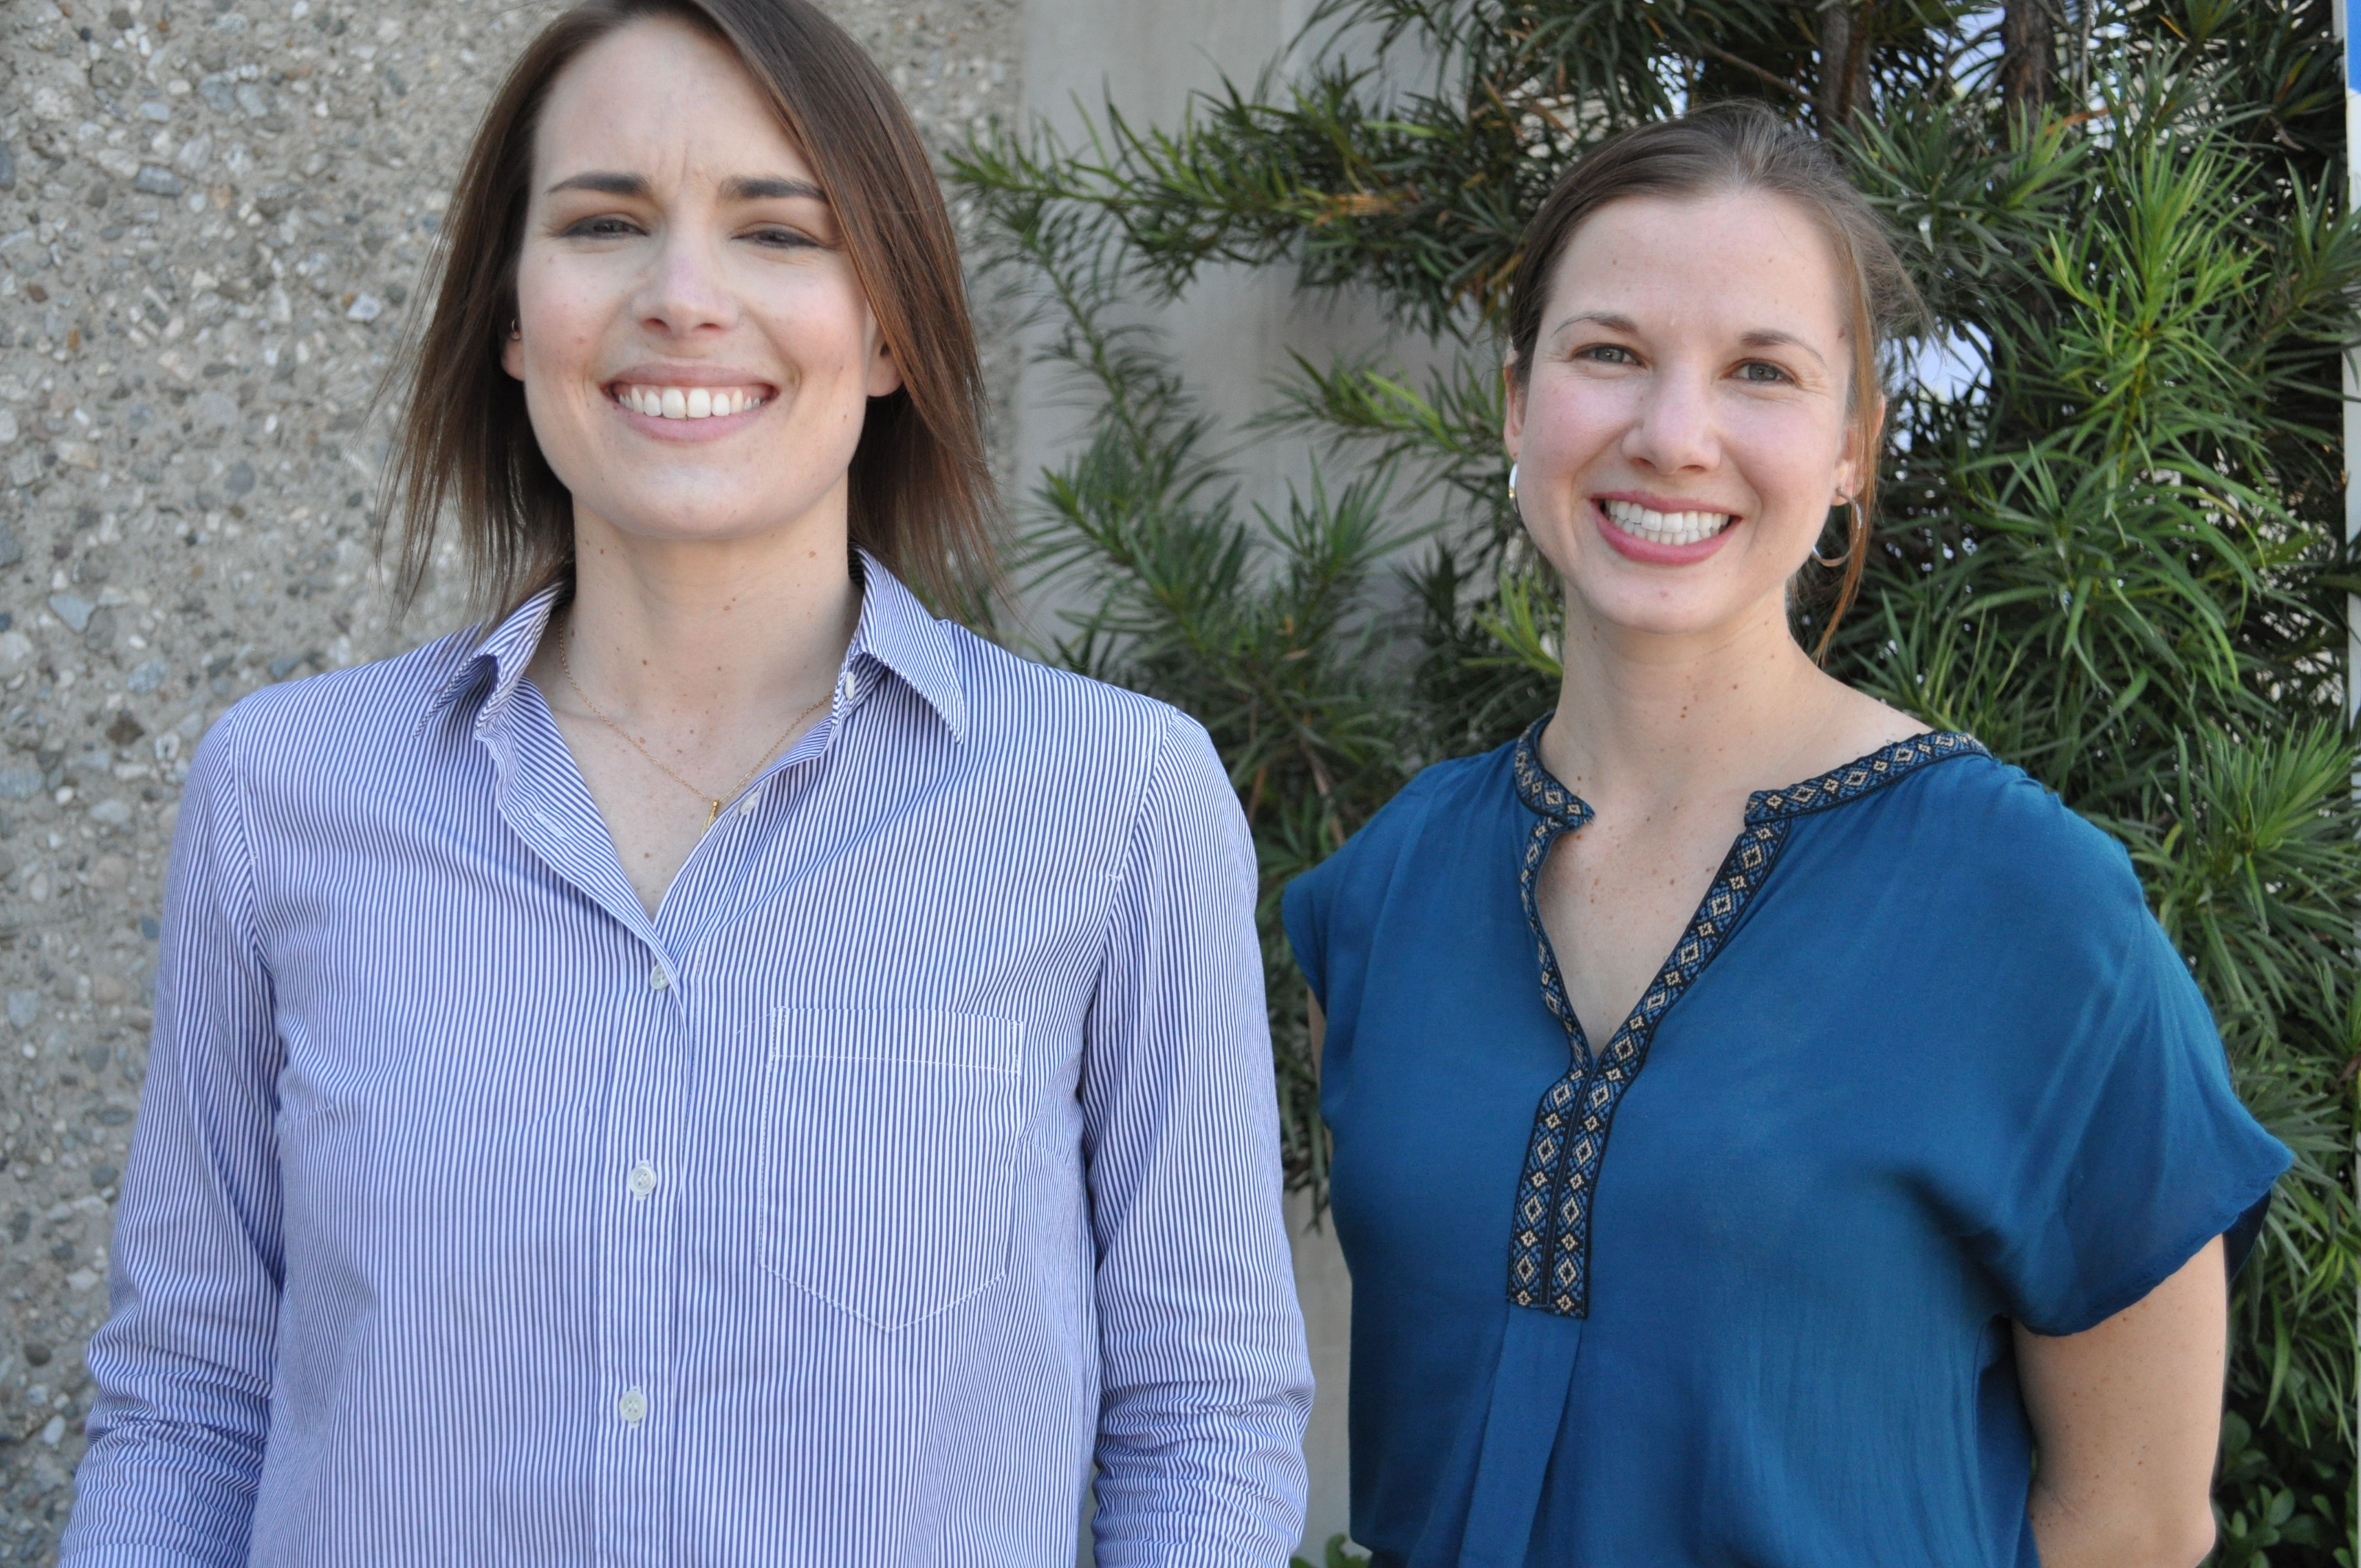 sounding off on silence in jane austen s mansfield park wins graduate students amanda styron and jenny howard took top honors in the jane austen society of